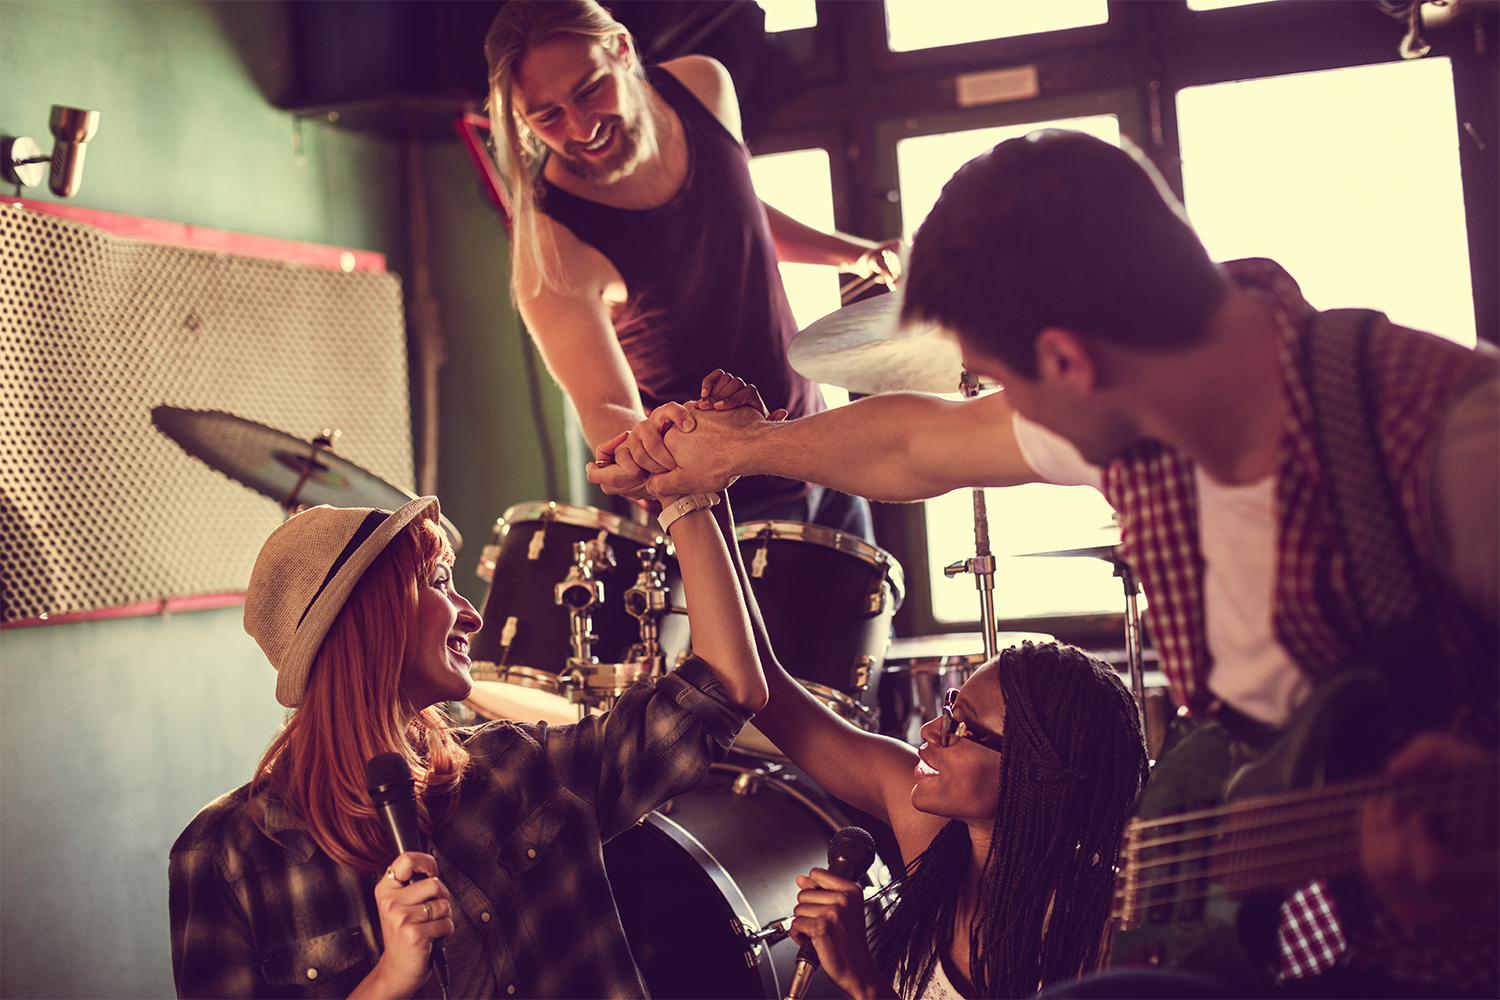 How To Change The Culture Of Your Band